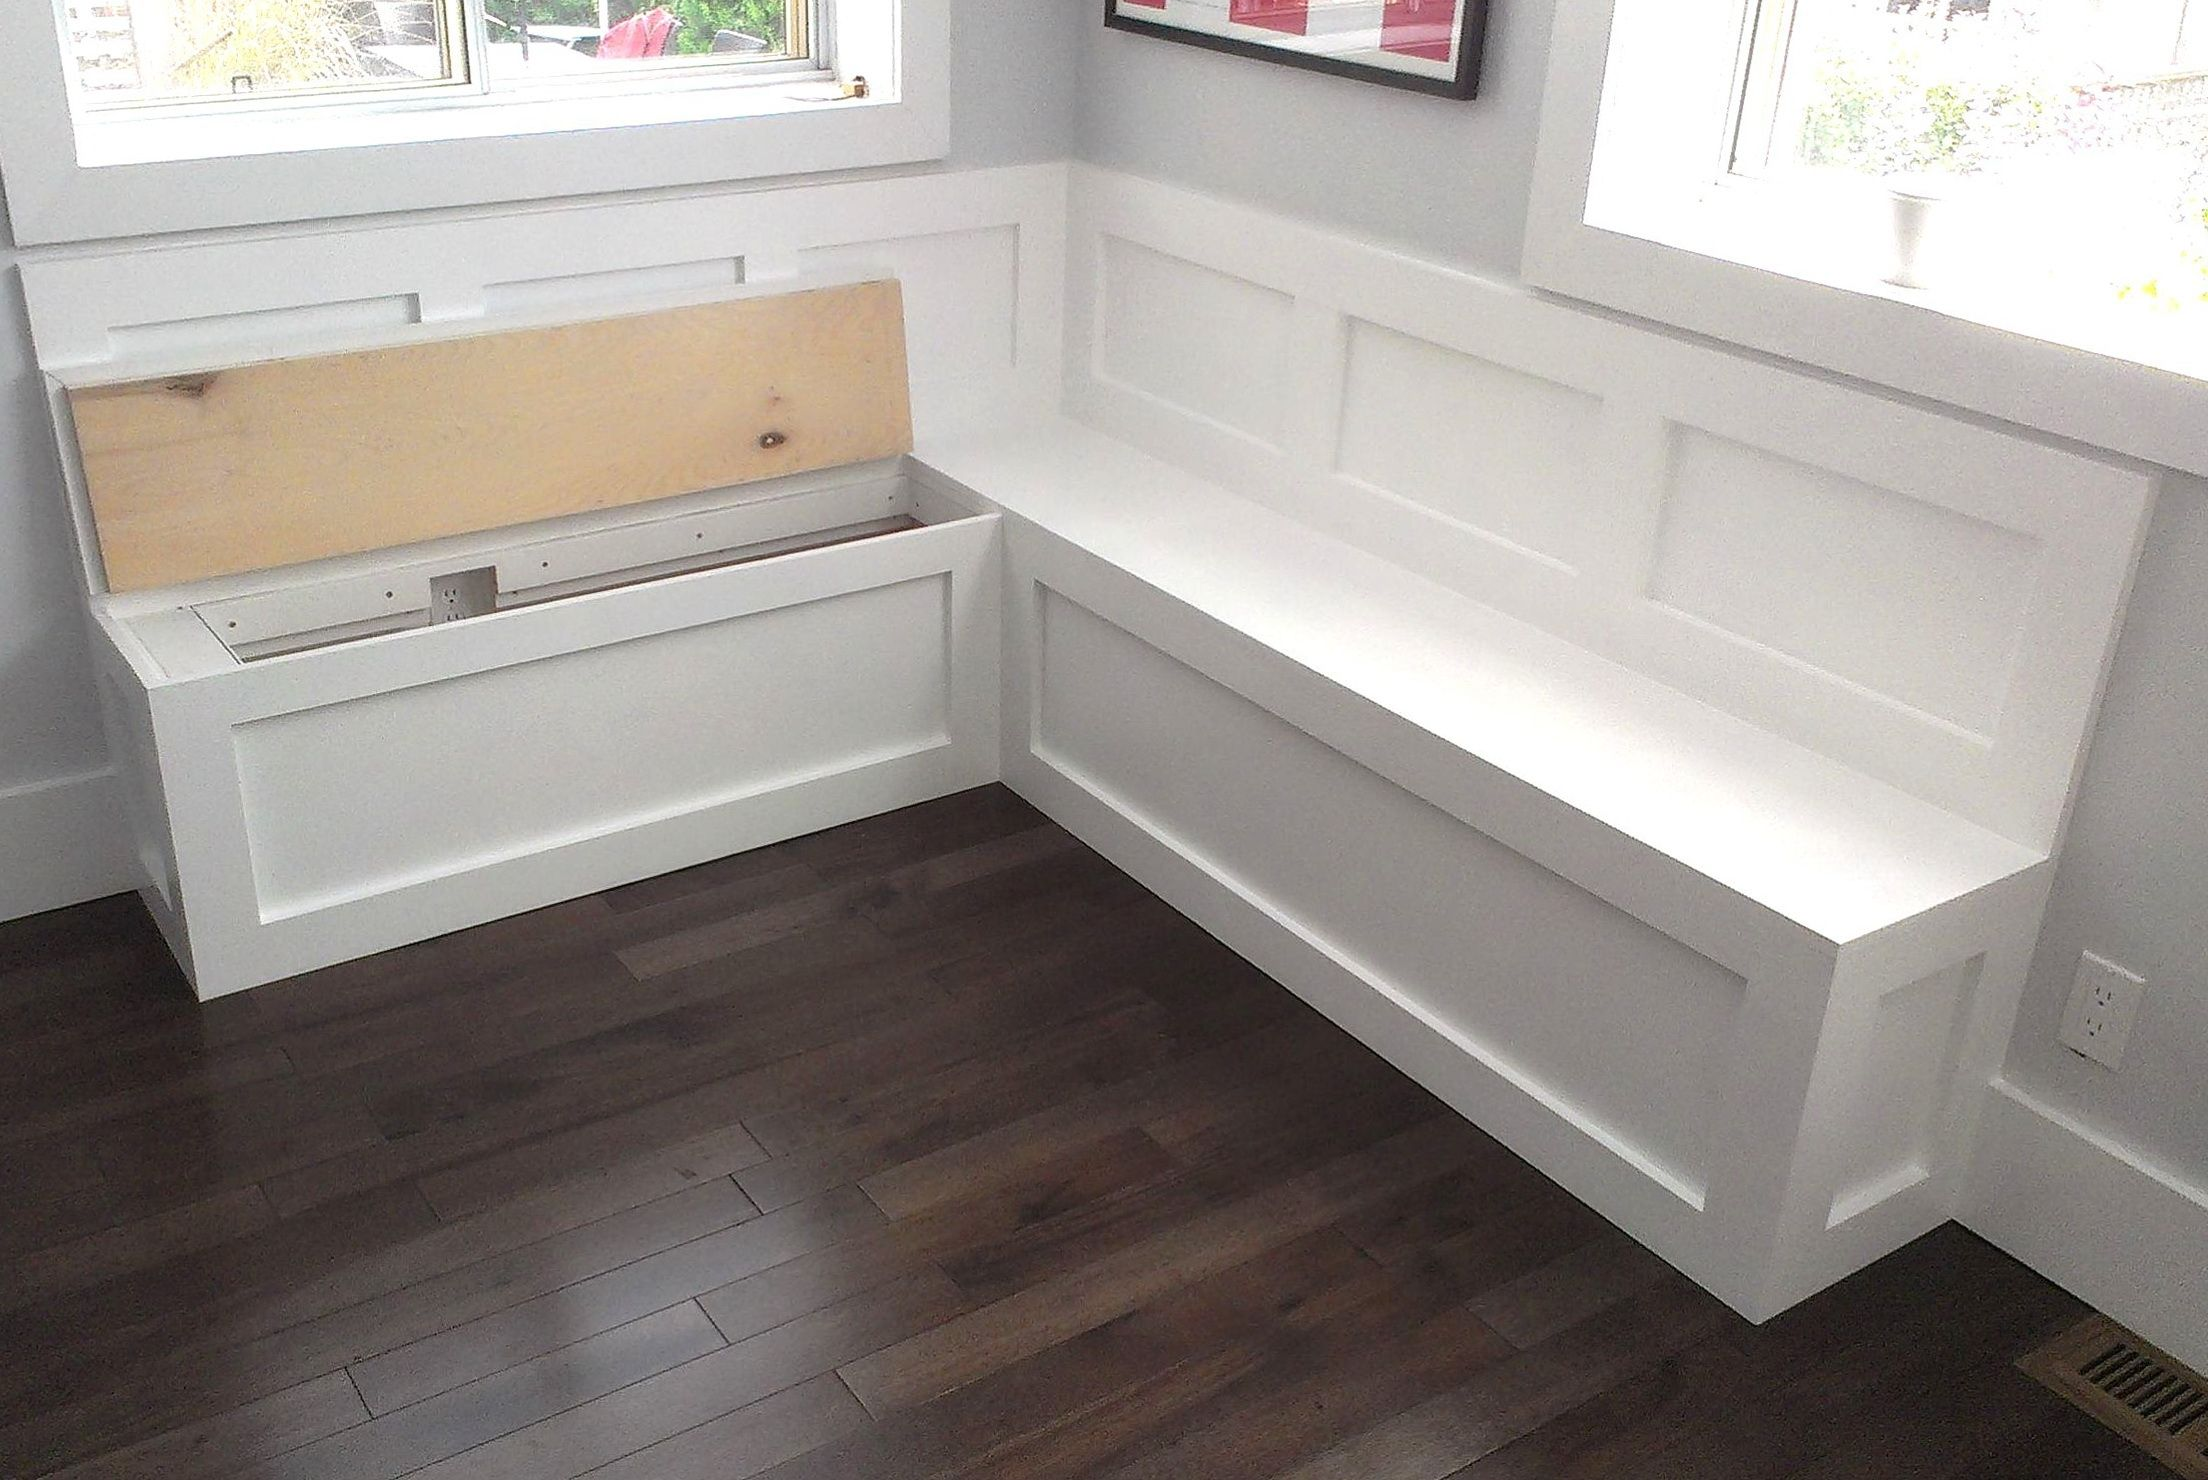 Bench Seat Plans Kitchen Storage